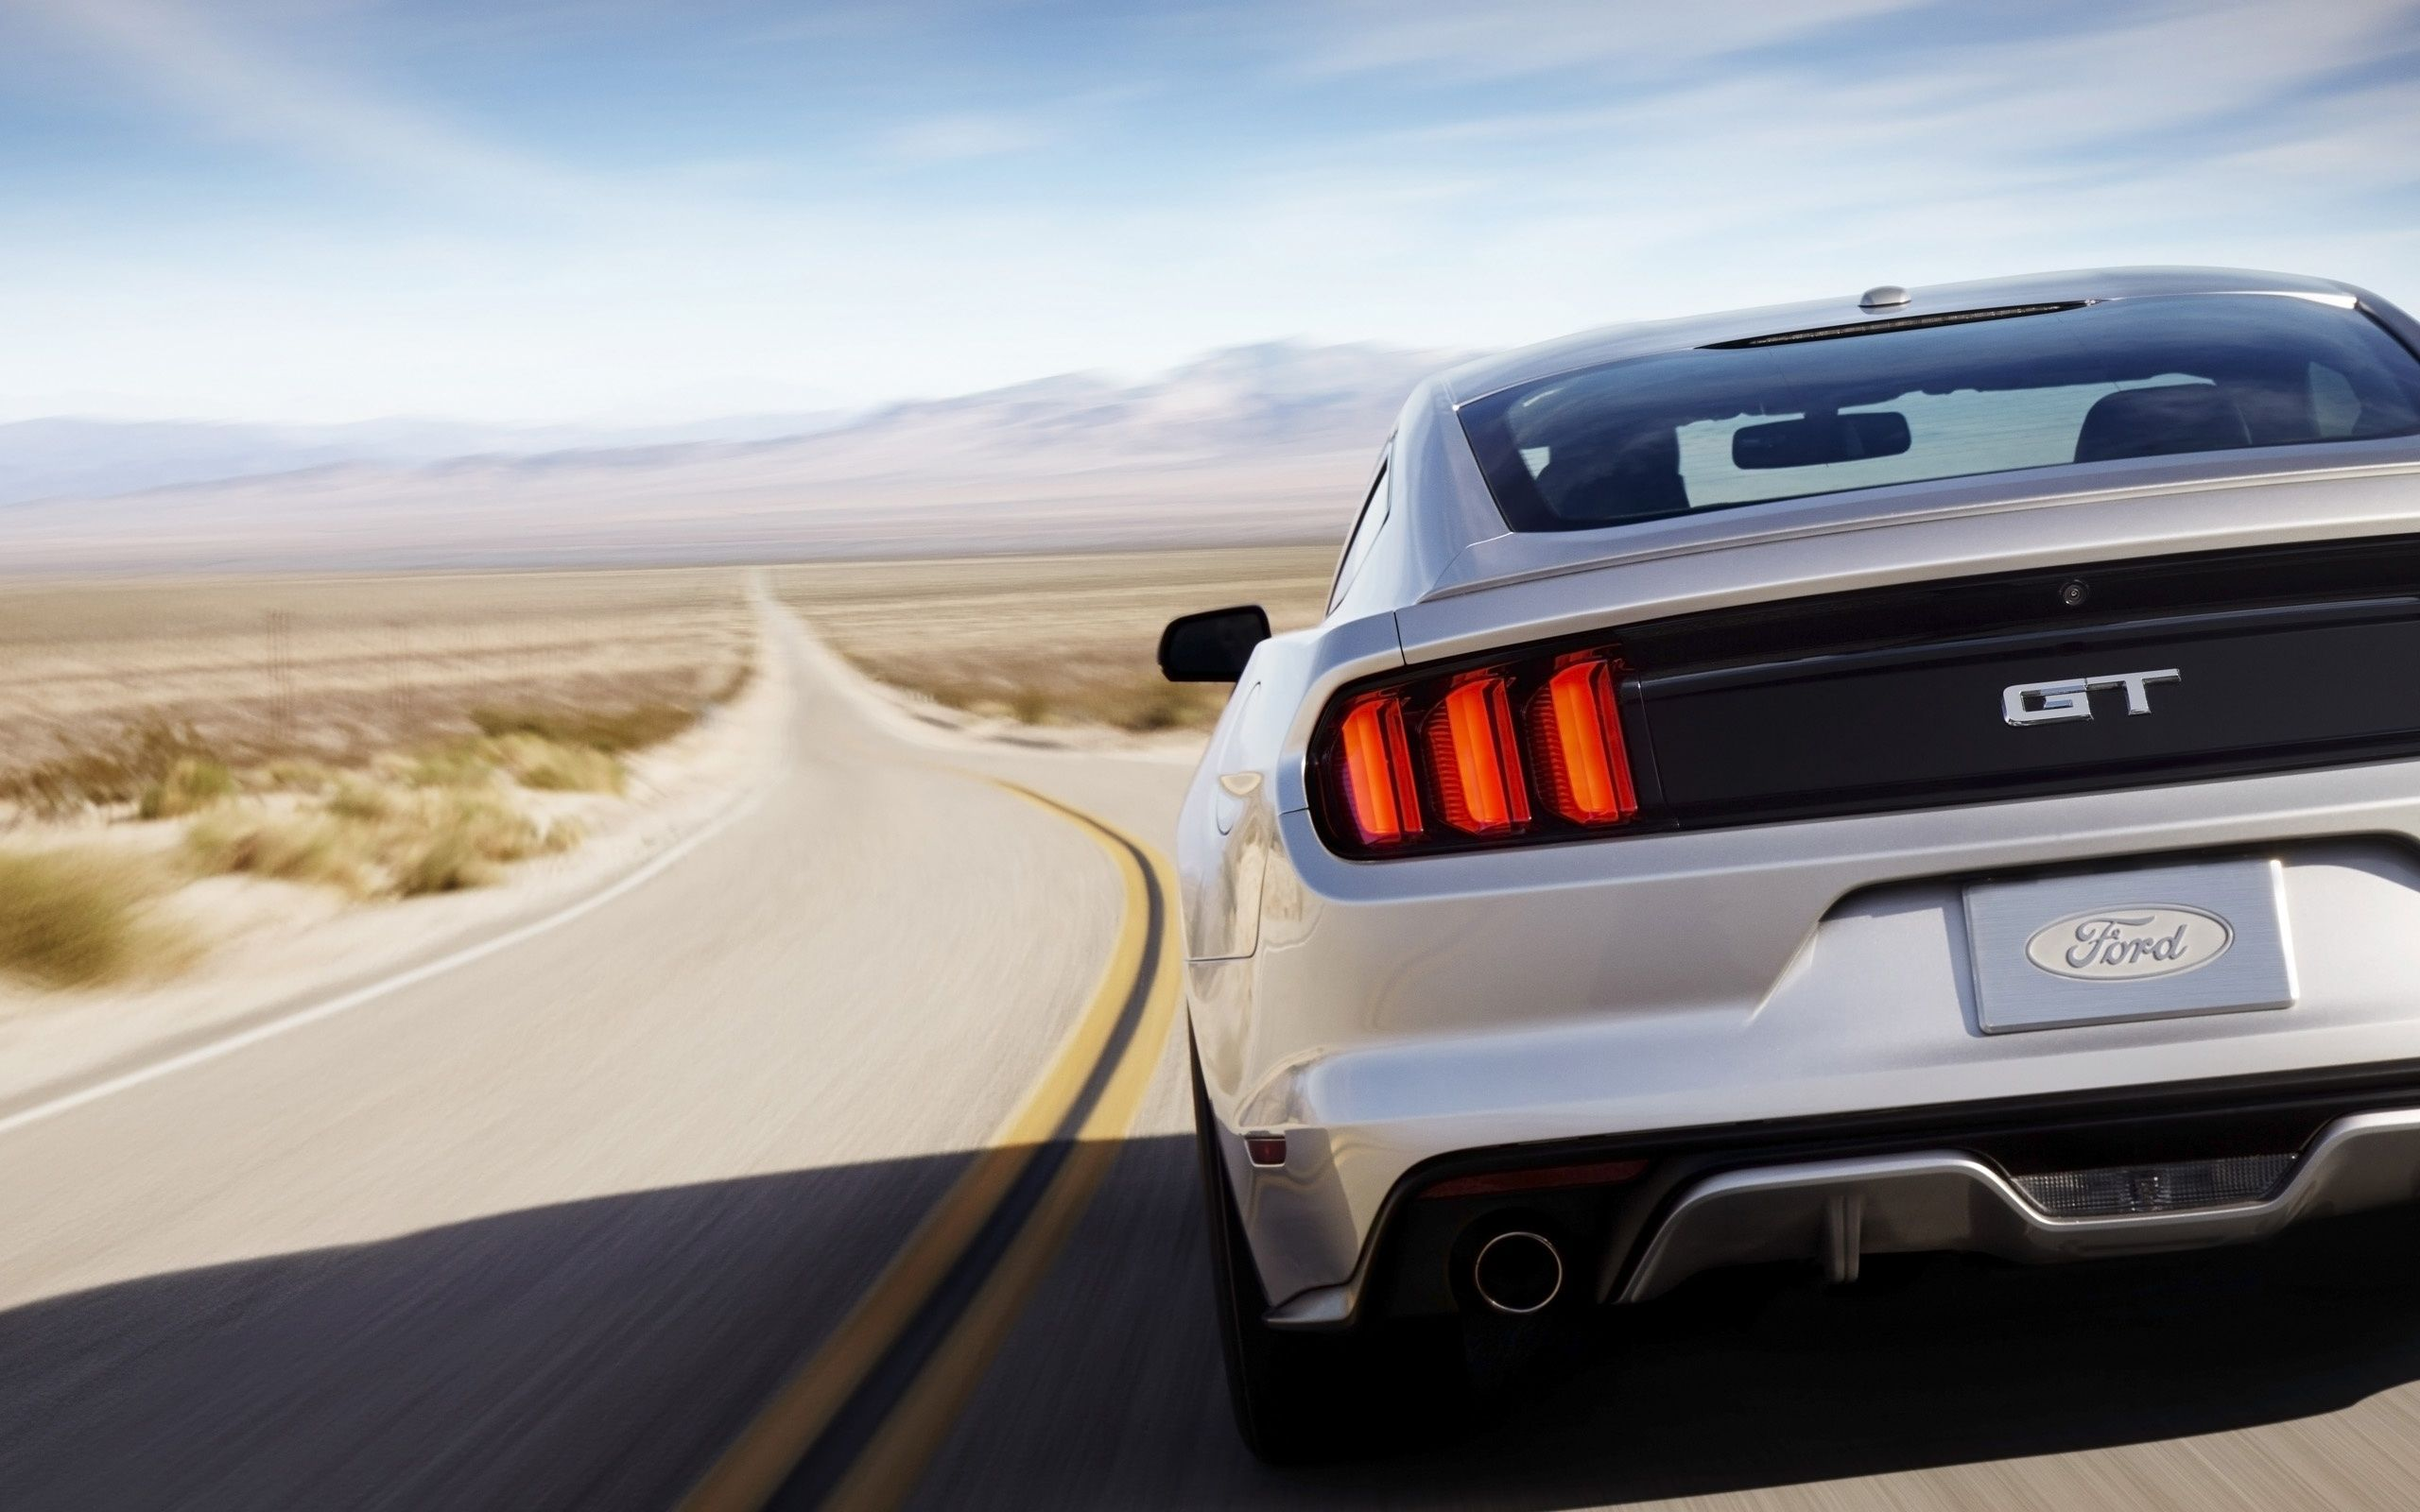 Ford Mustang Wallpapers - Wallpaper Cave